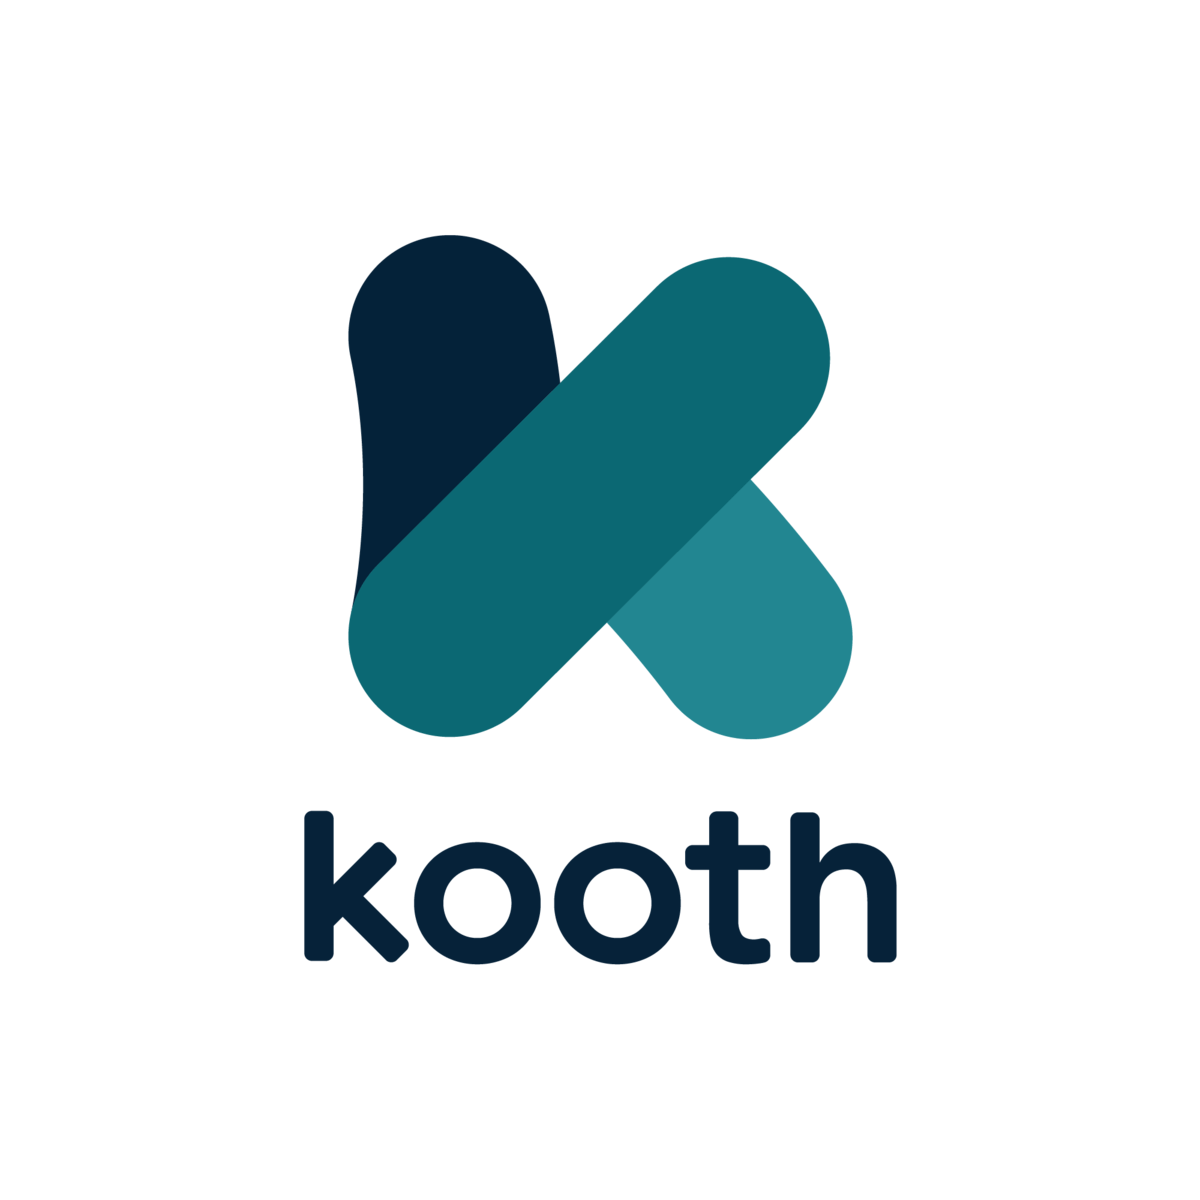 KOOTH Update